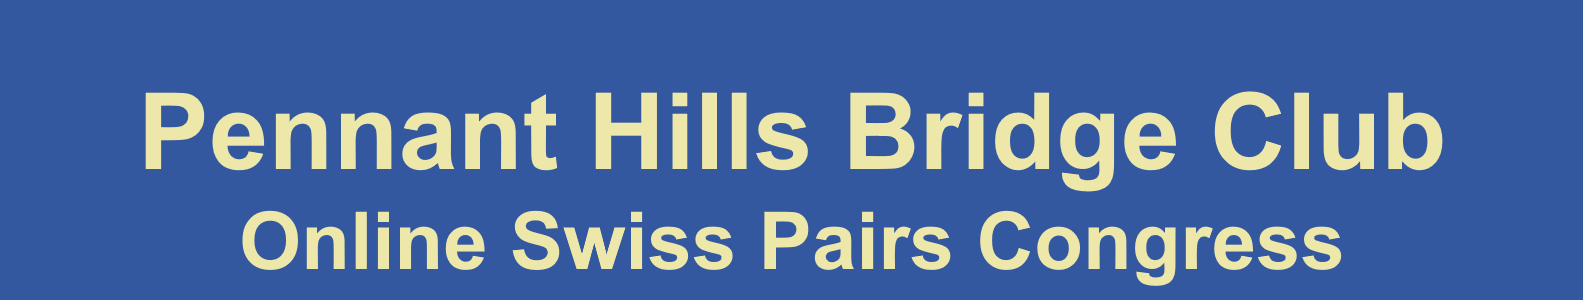 Pennant Hills Bridge Club Online Swiss Pairs Congress Information Page